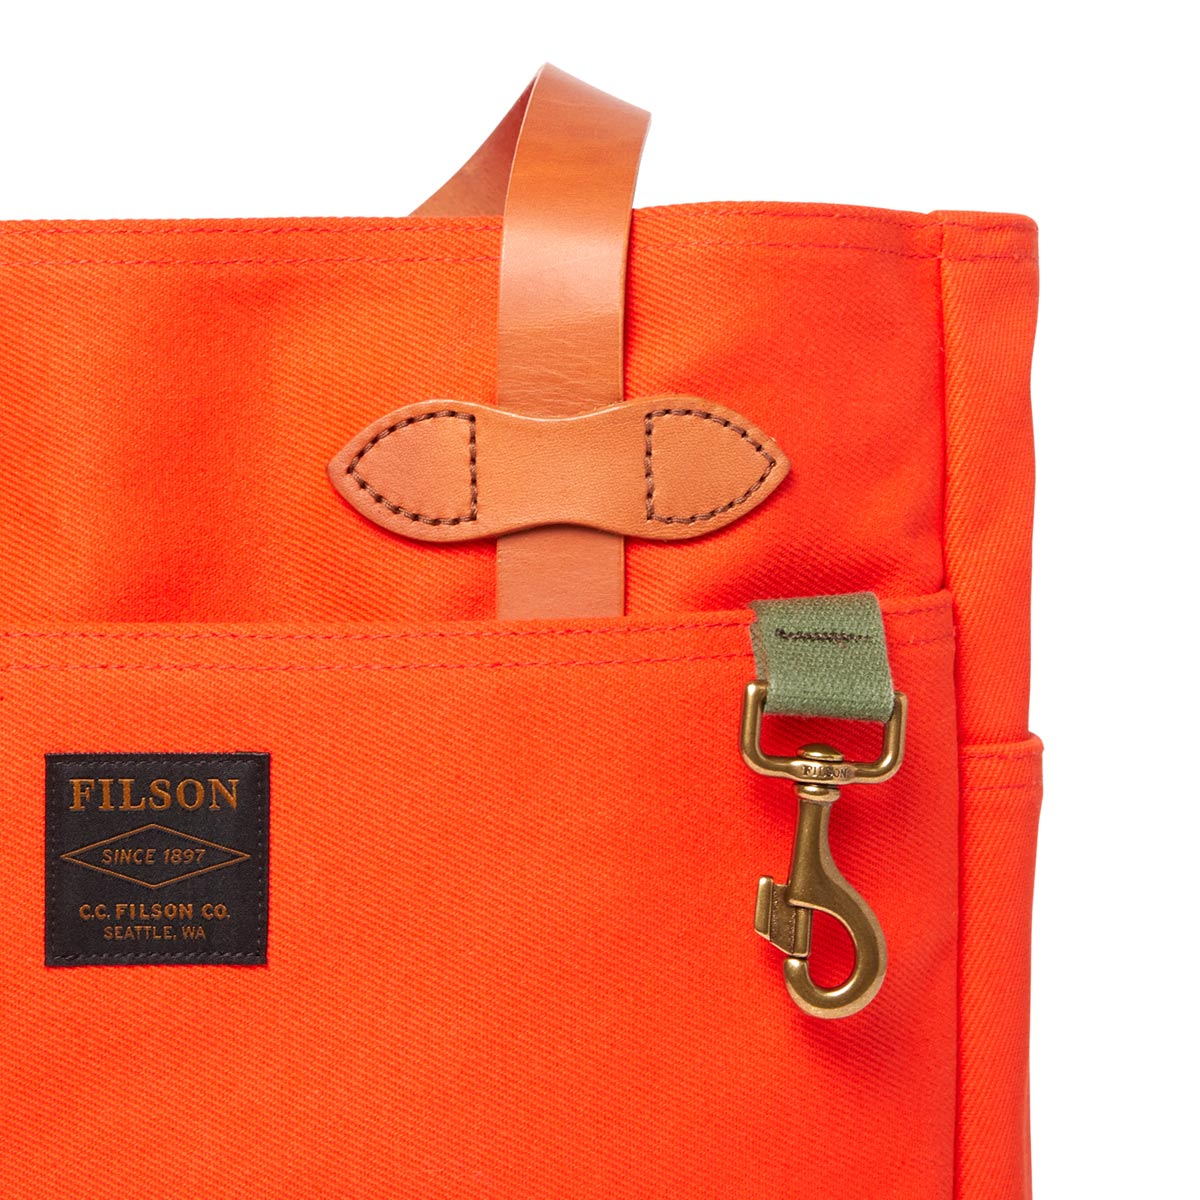 Filson Rugged Twill Tote Bag Pheasant Red, lifestyle